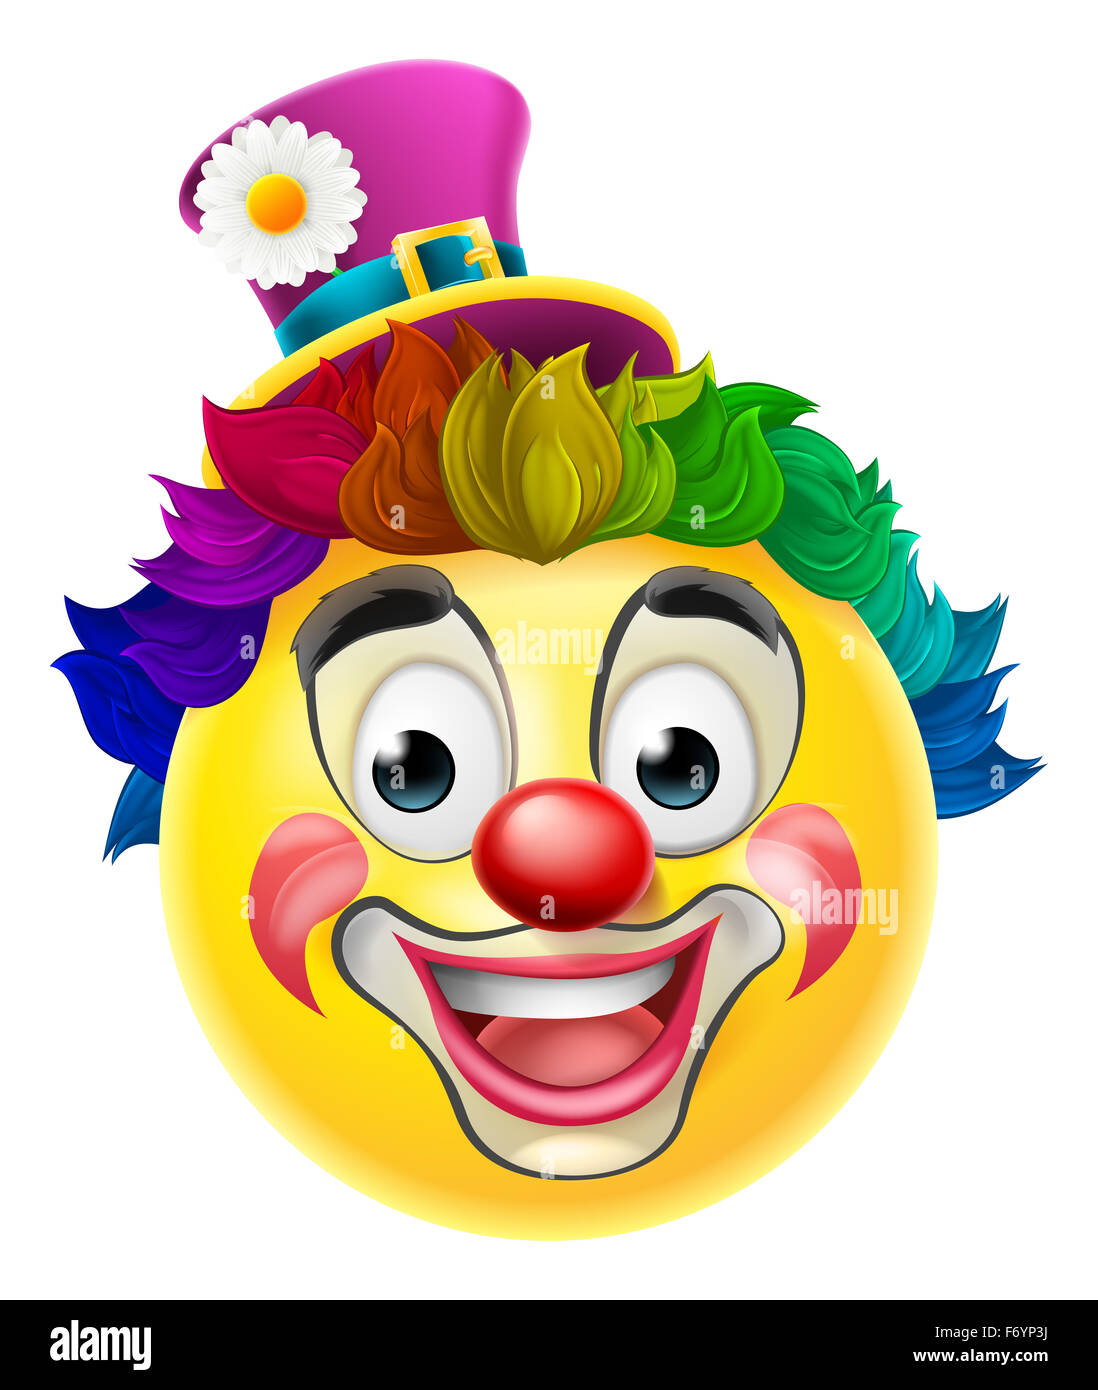 a clown cartoon emoji emoticon smiley face character with